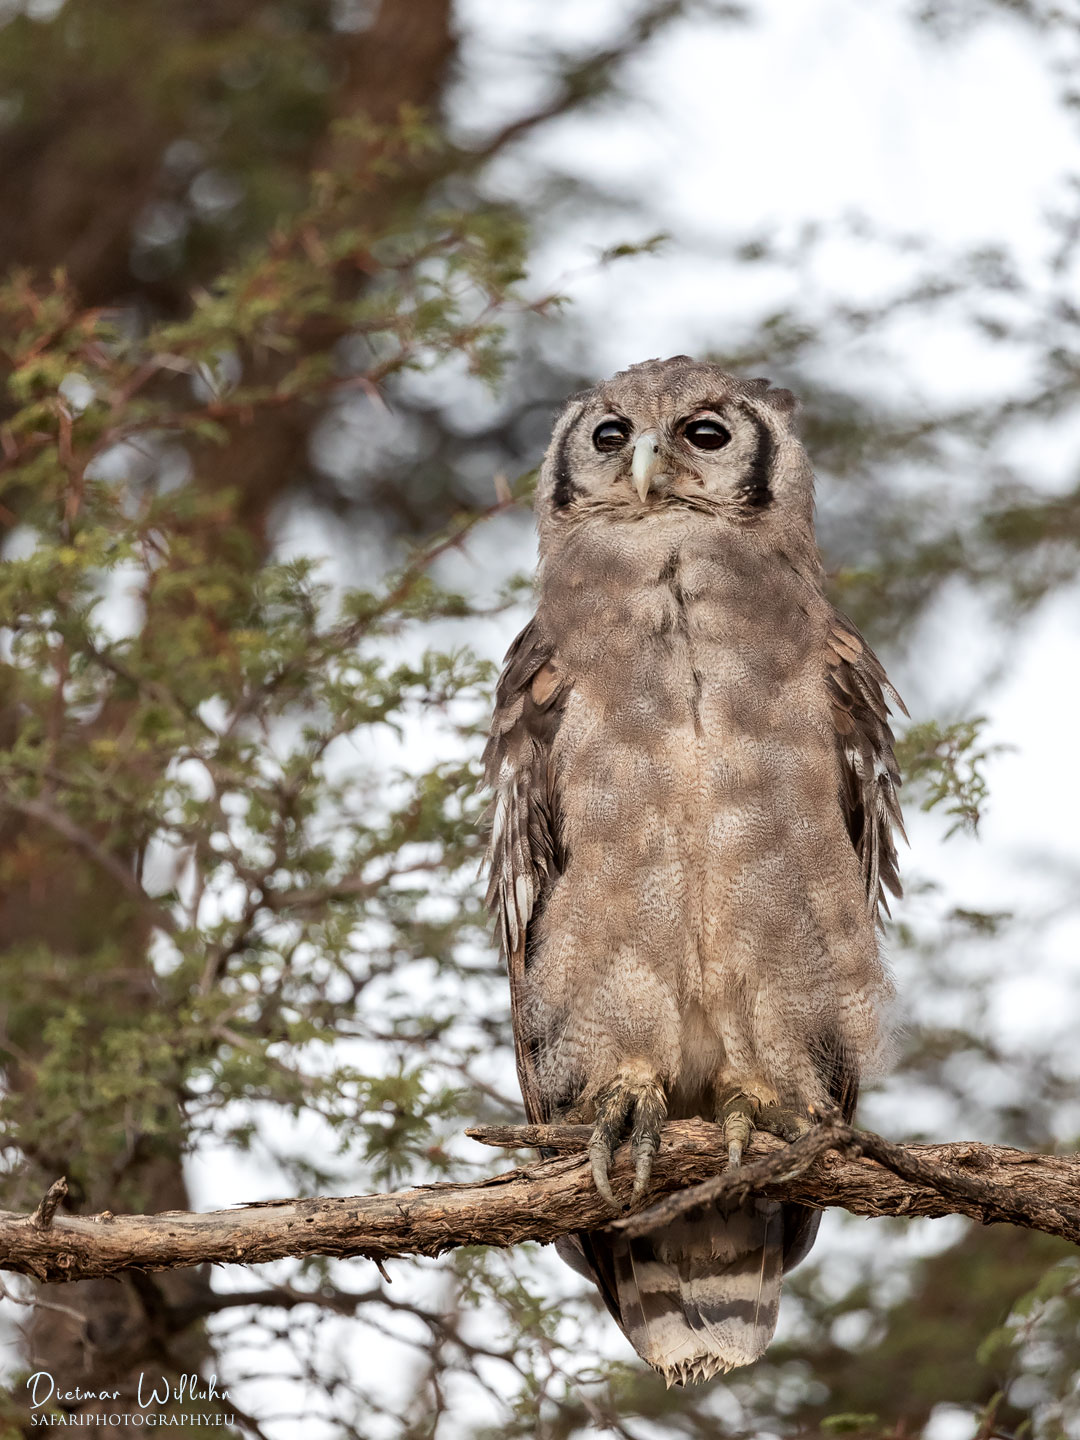 Giant Eagle-Owl - Kgalagadi Transfrontier Park - South Africa